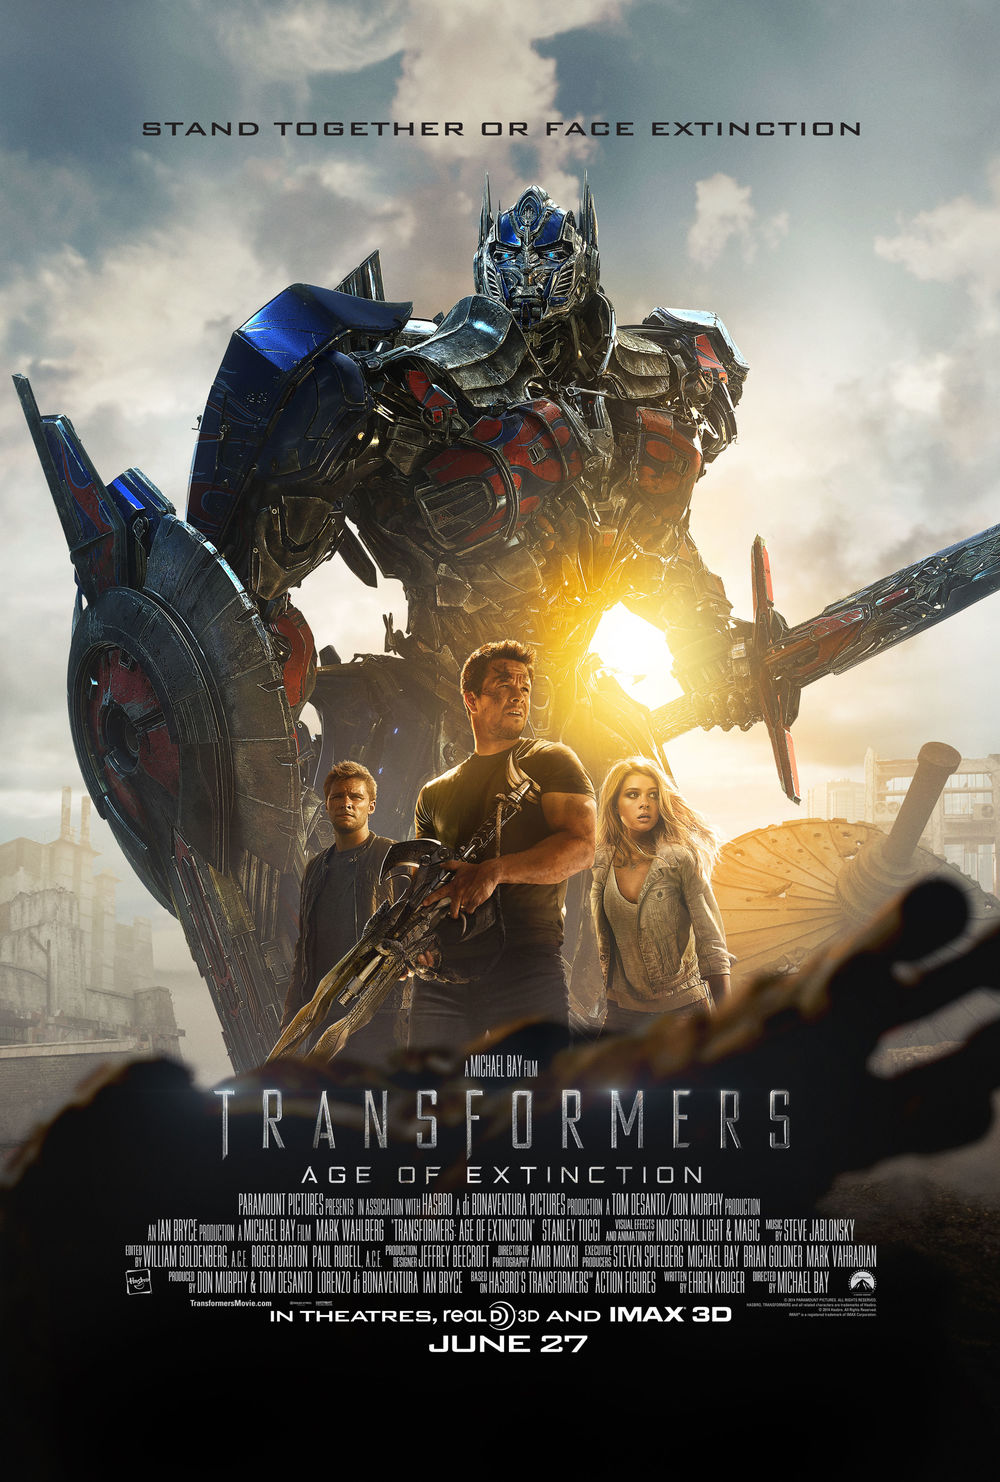 Transformers Age of Extinction, Optimus Prime